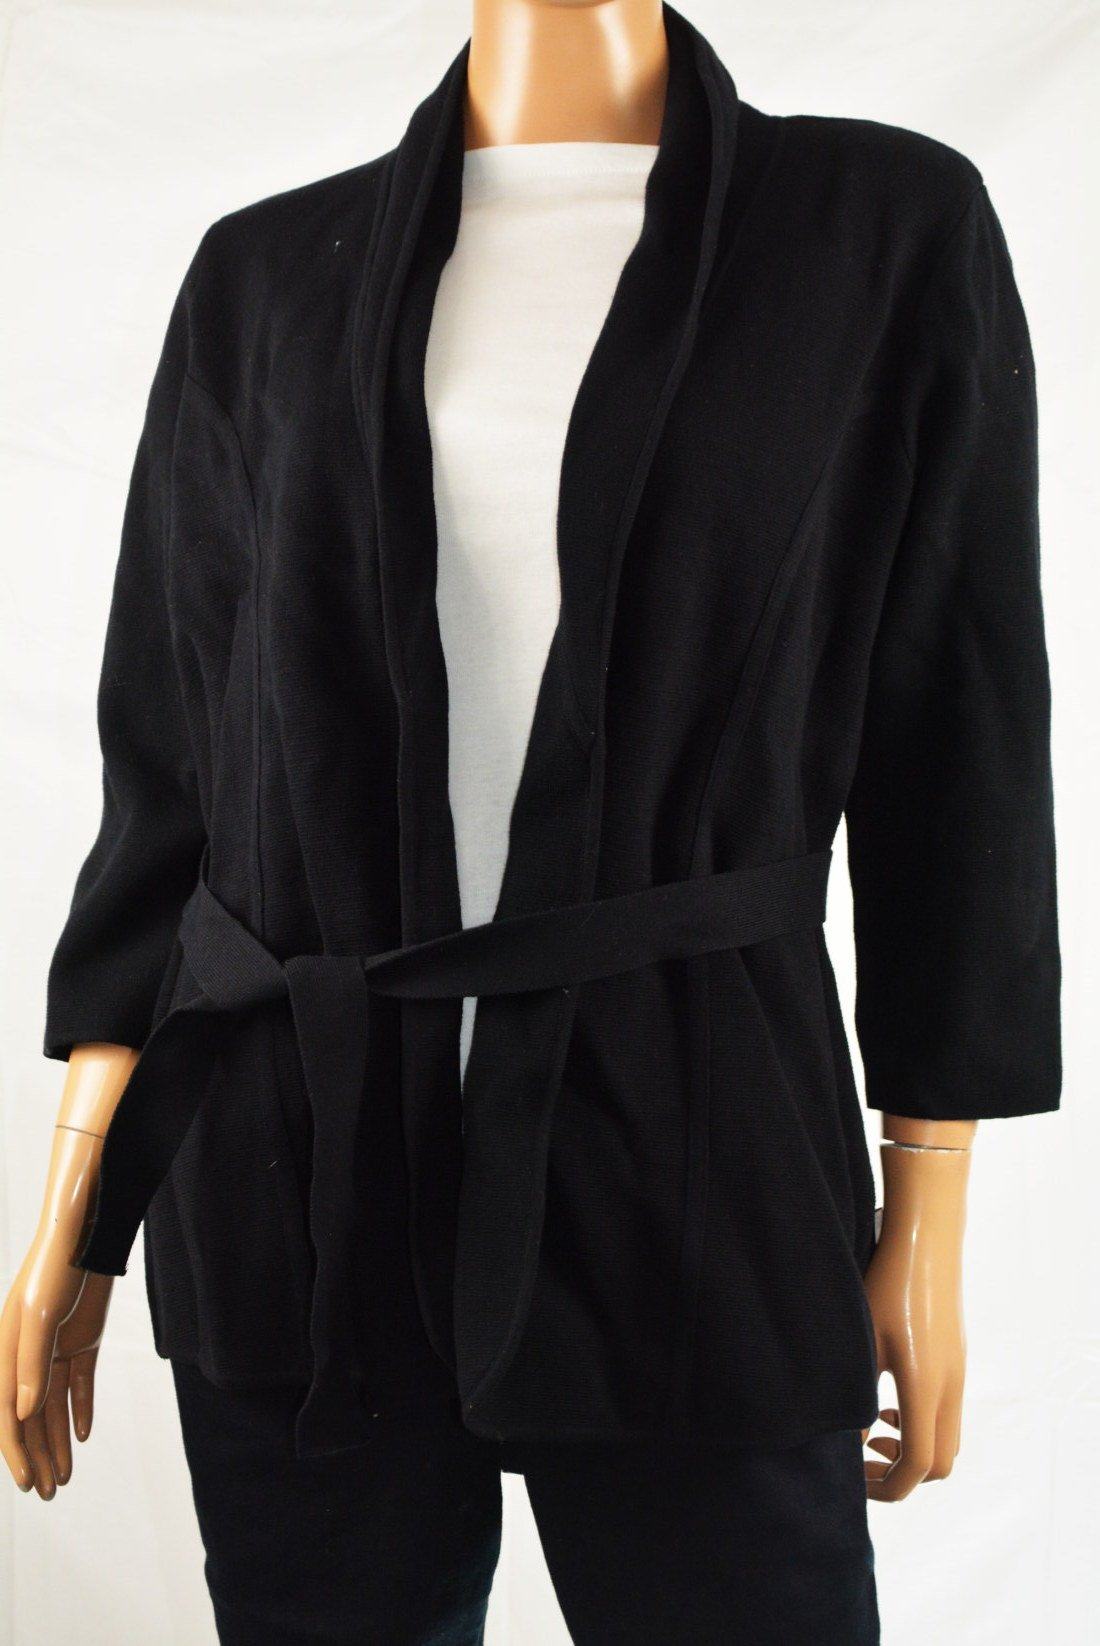 Alfani Women's 3/4 Sleeve Black Open Front Belted Sweater Jacket Cardigan XL - evorr.com